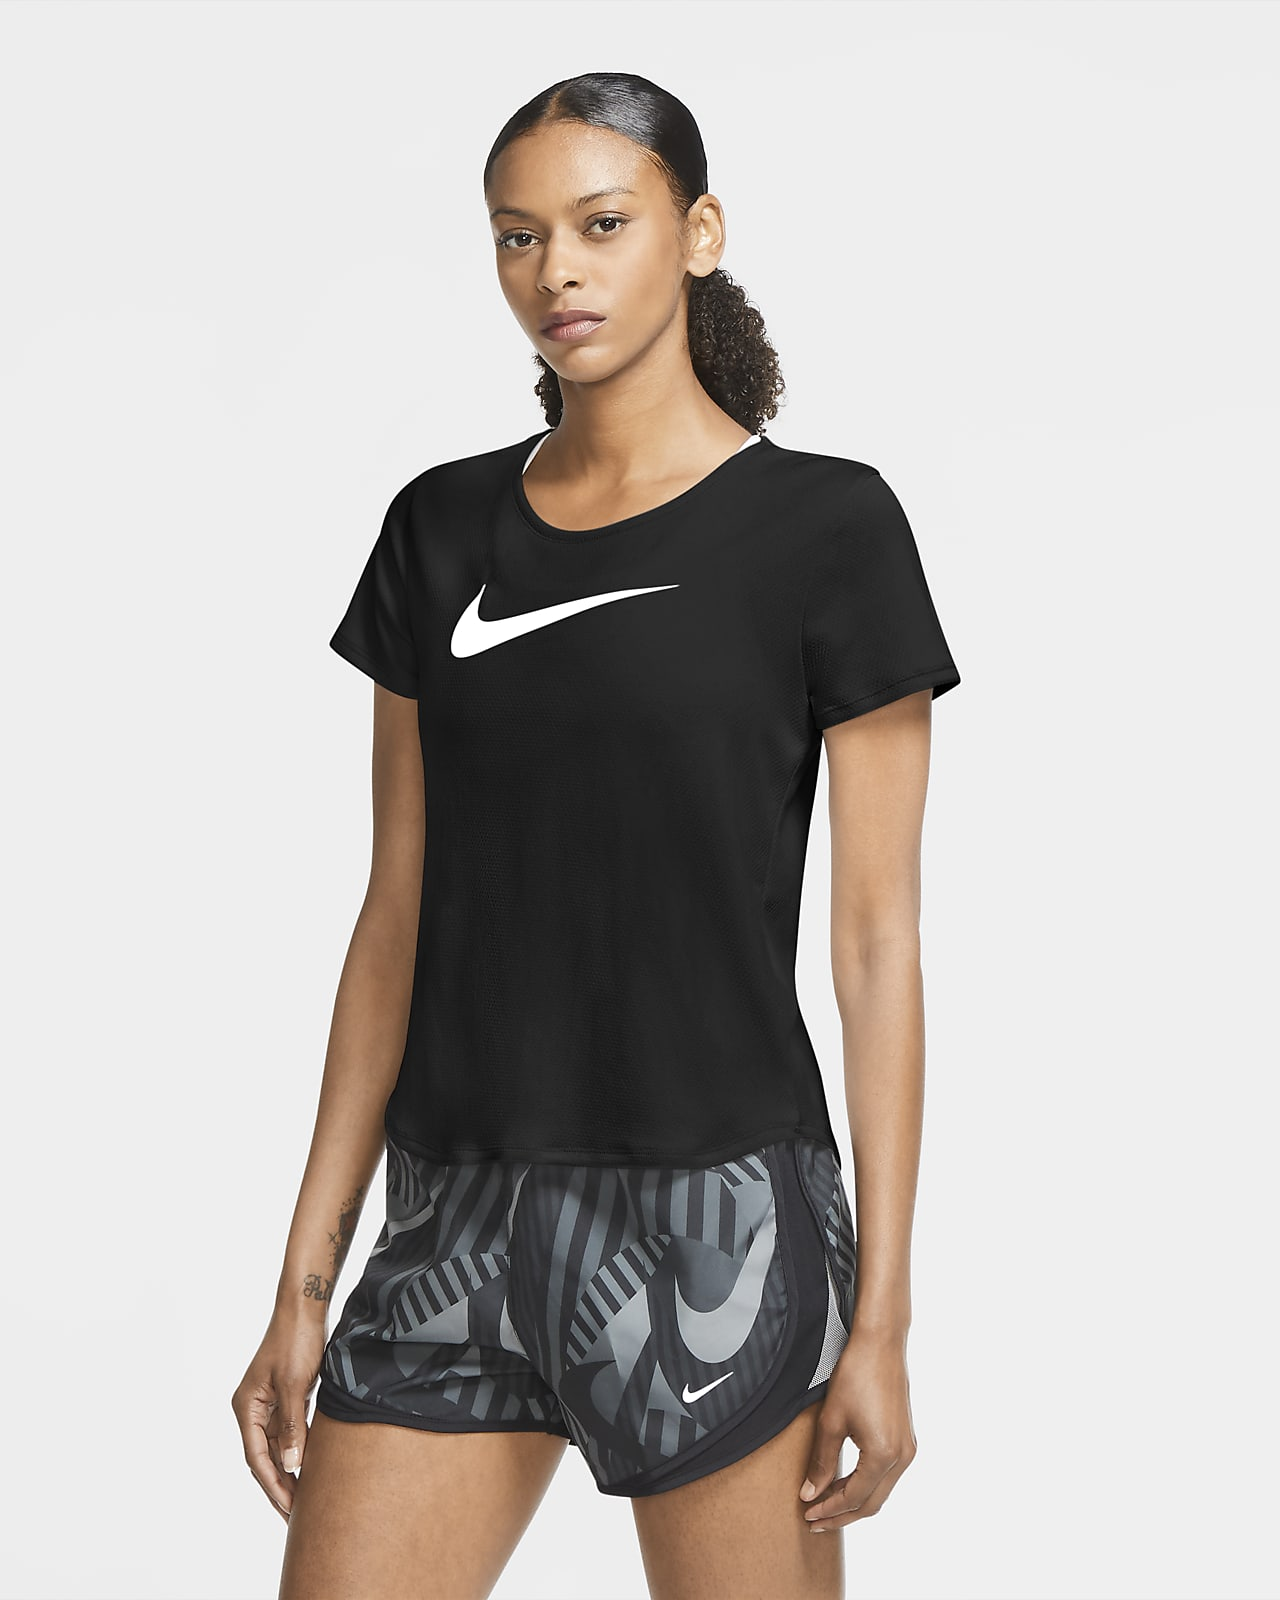 Nike Swoosh Run Women's Short-Sleeve Running Top